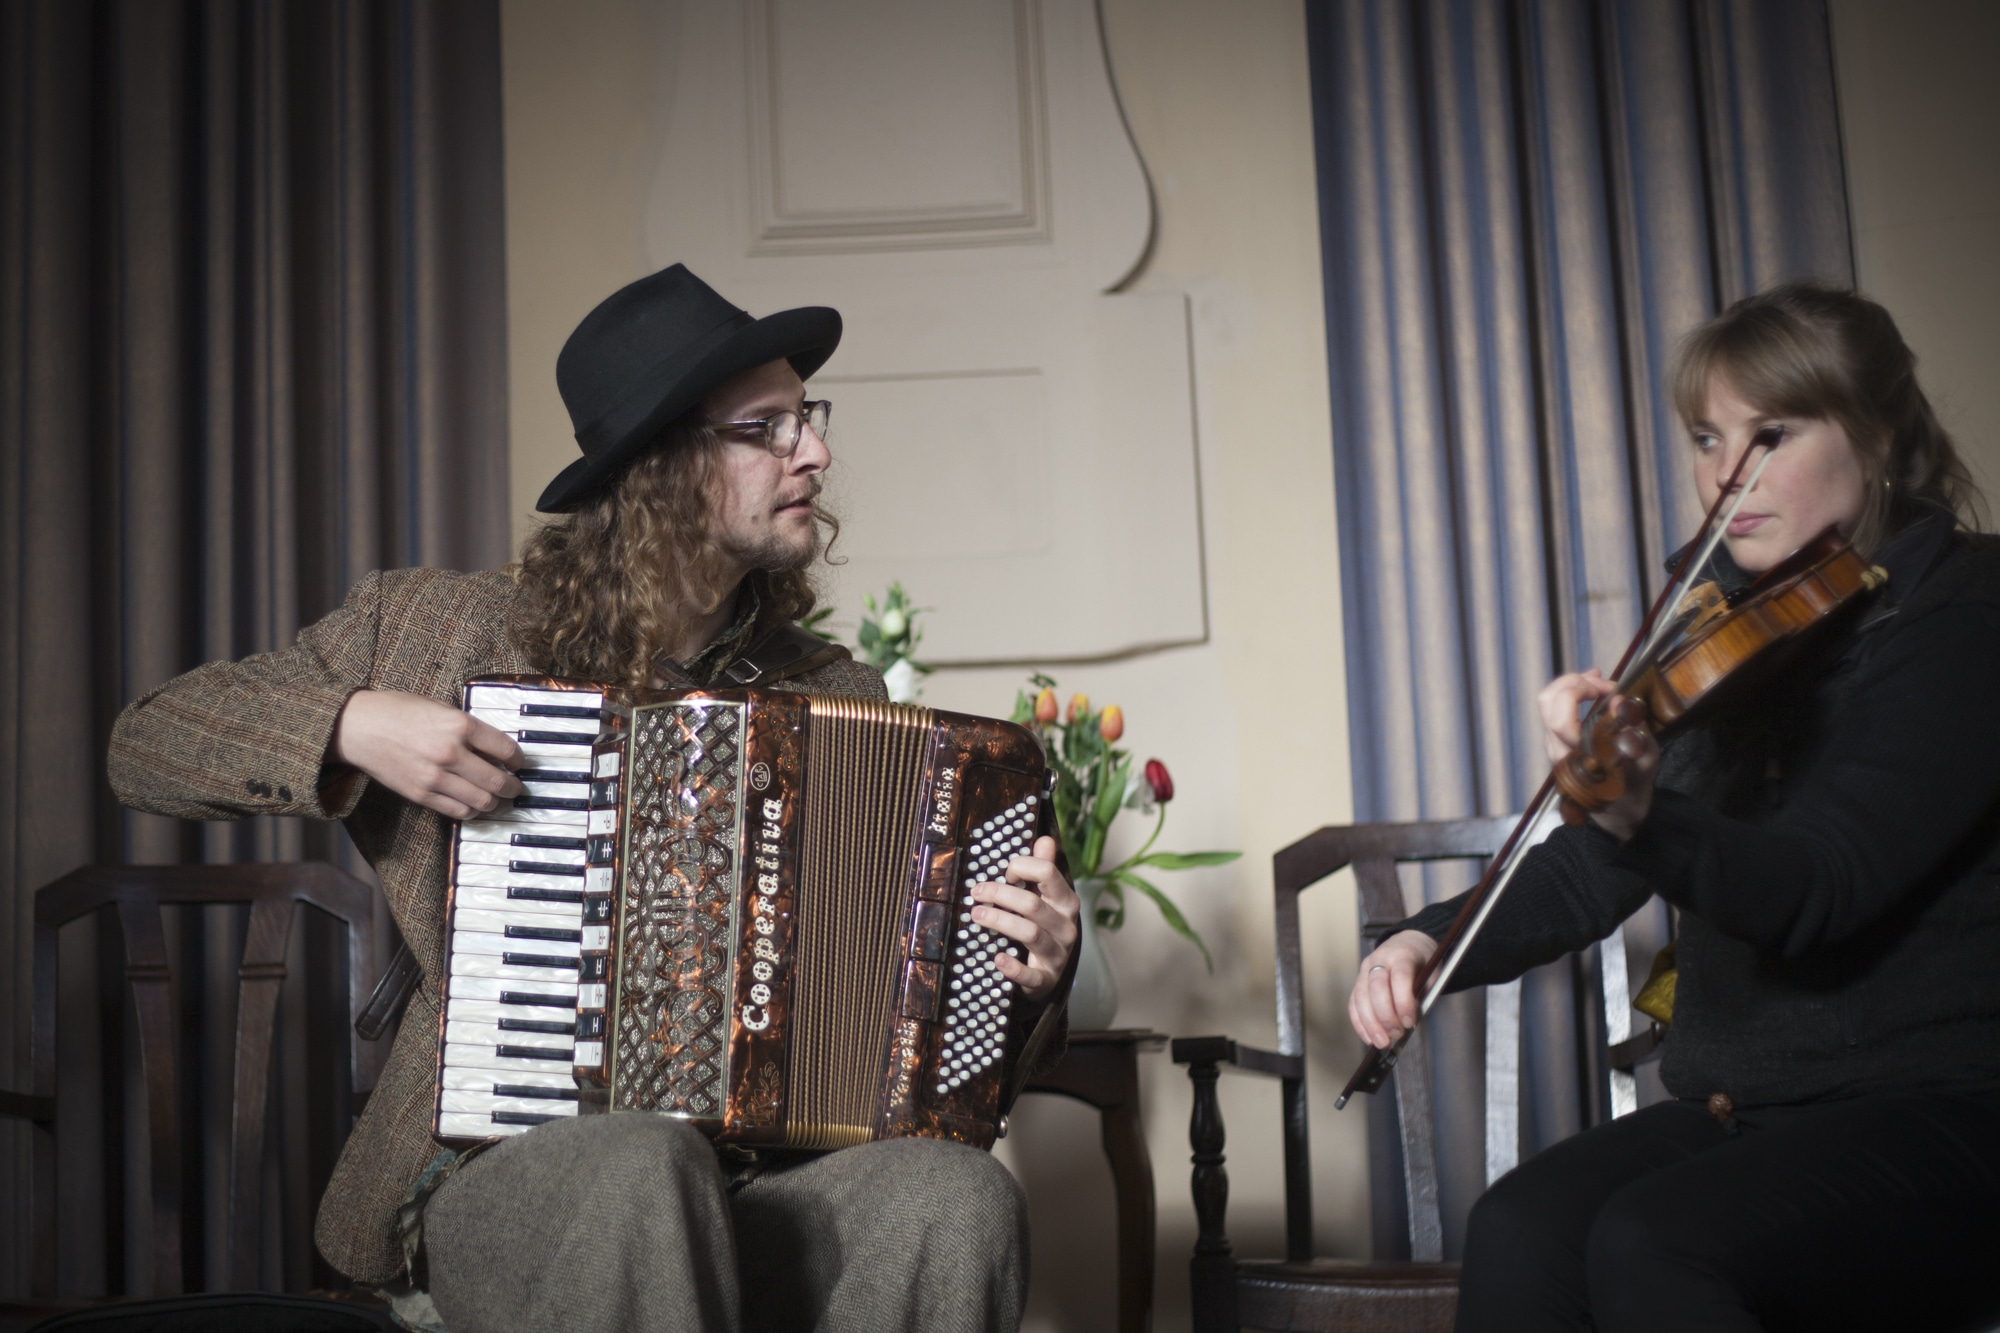 A man playing accordian and a woman playing the violin.